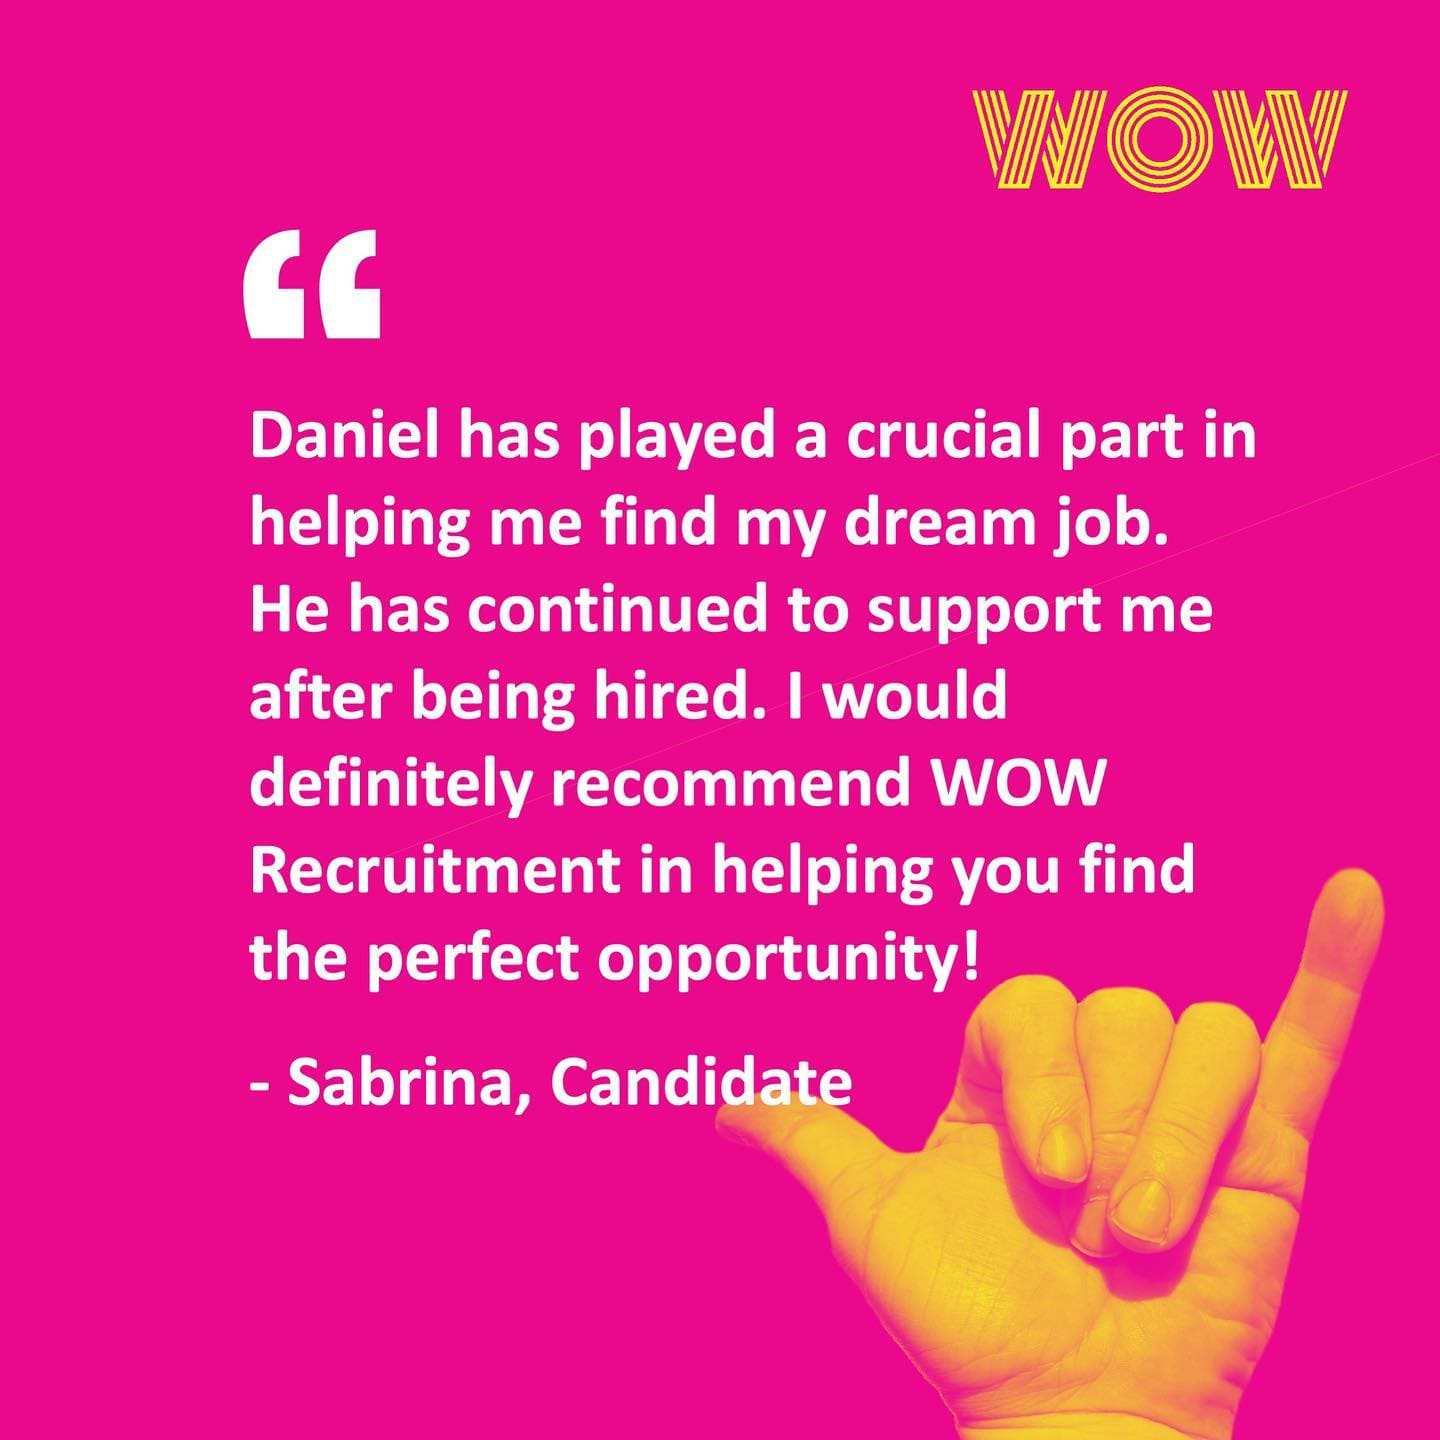 Here's what our candidates have to say about working with Daniel!